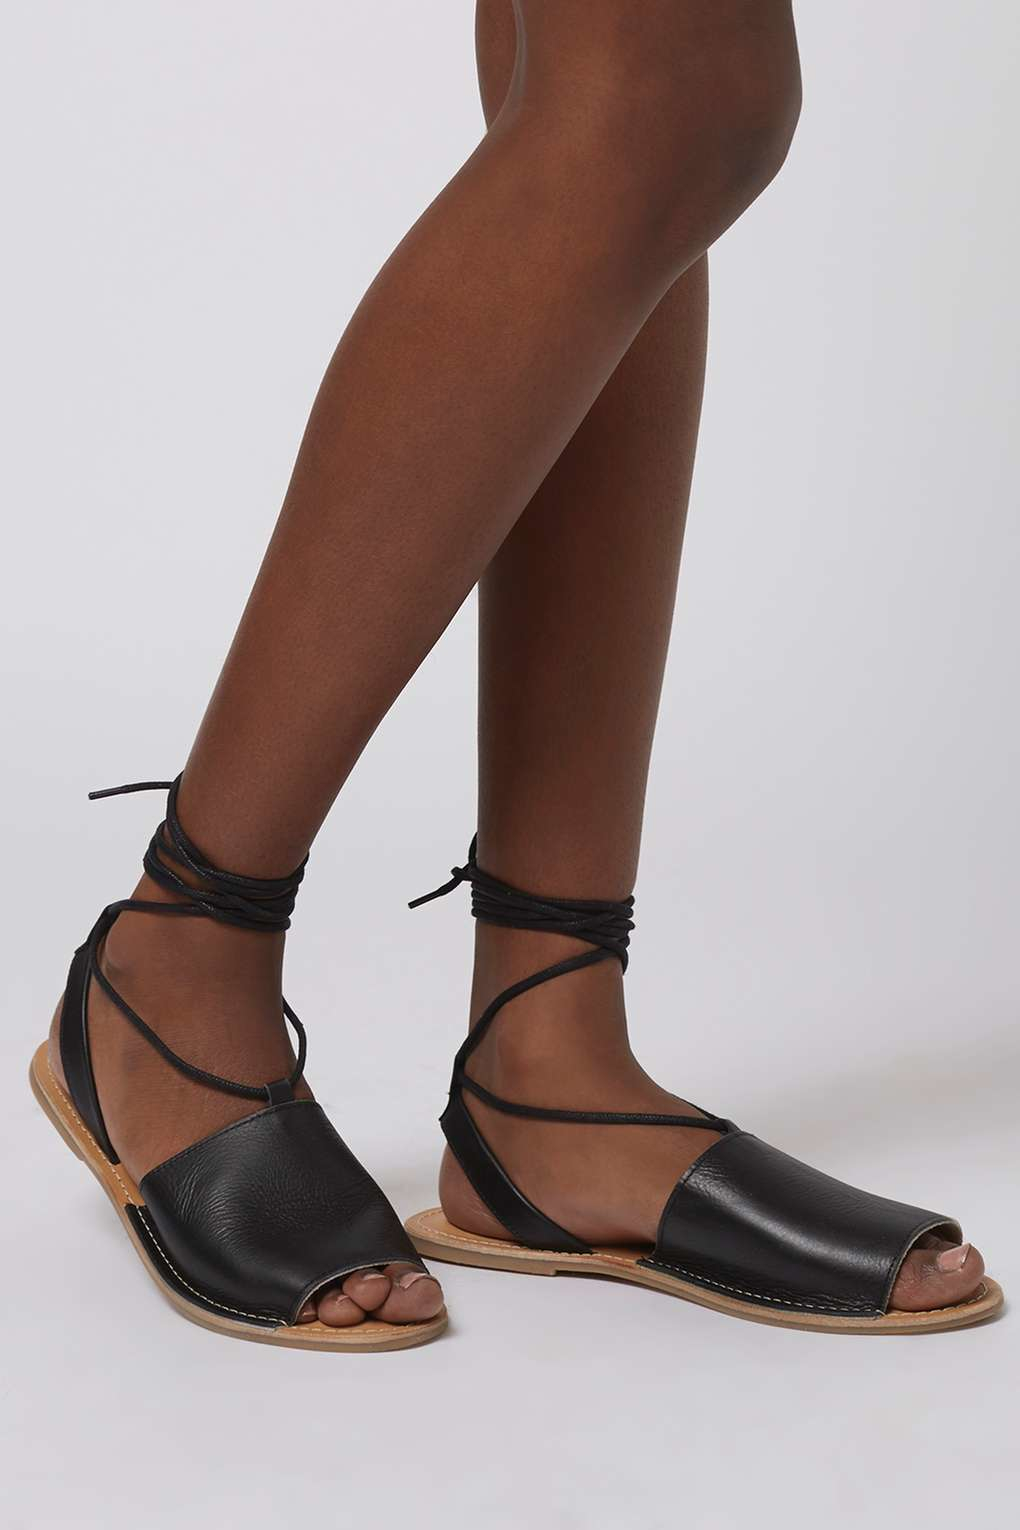 Lyst Topshop Holly Ankle Tie Sandals In Black